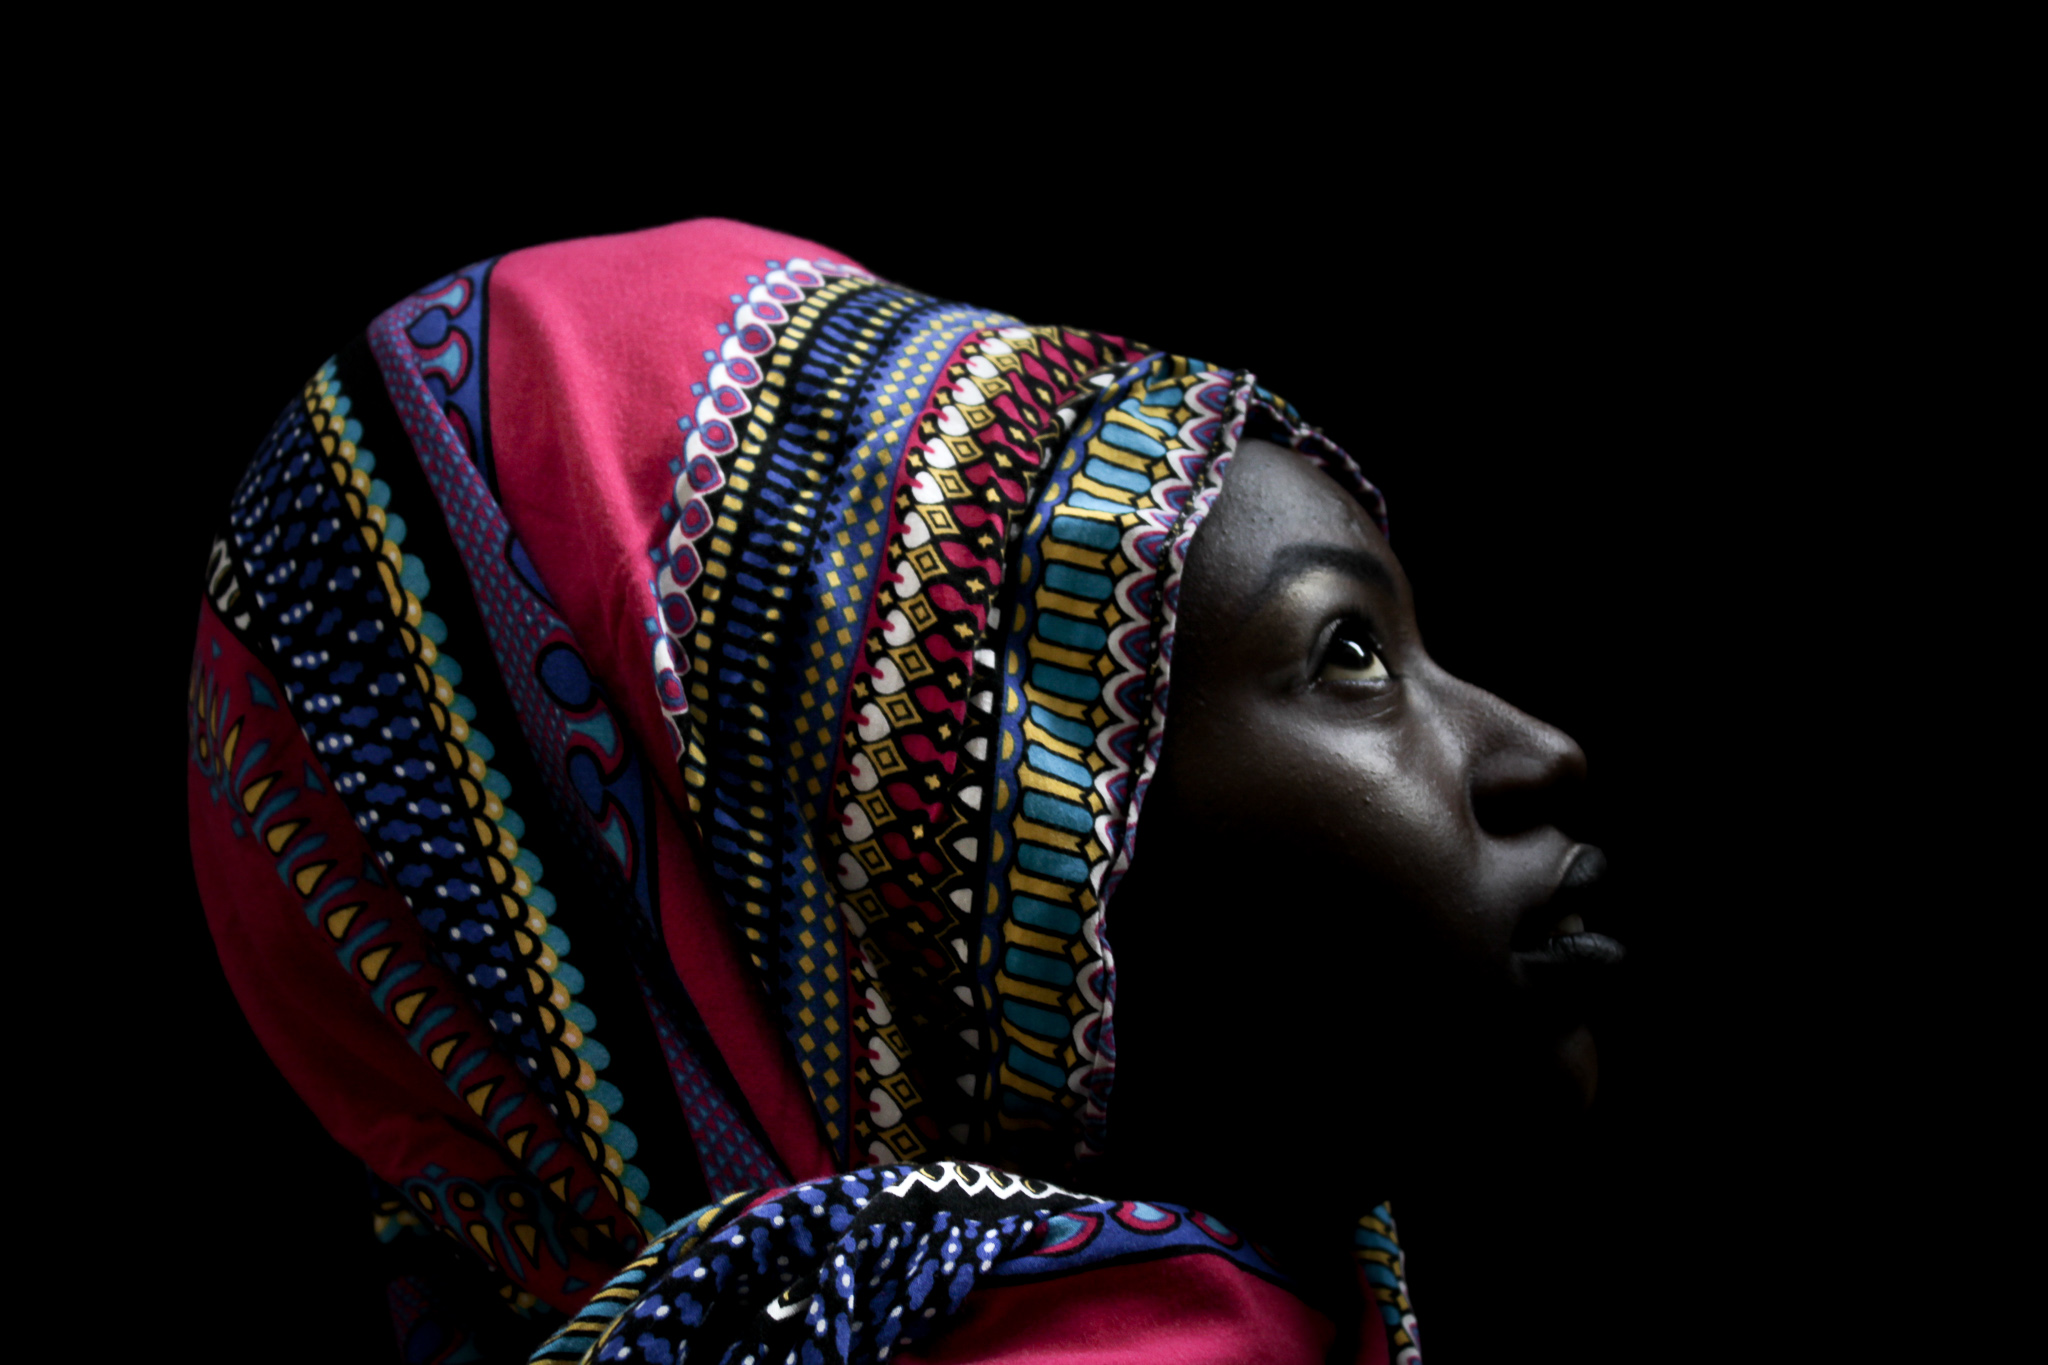 SHOW YOUR AFRICANITY #7 SELF-ACCEPTANCE OF OUR BLACKNESS